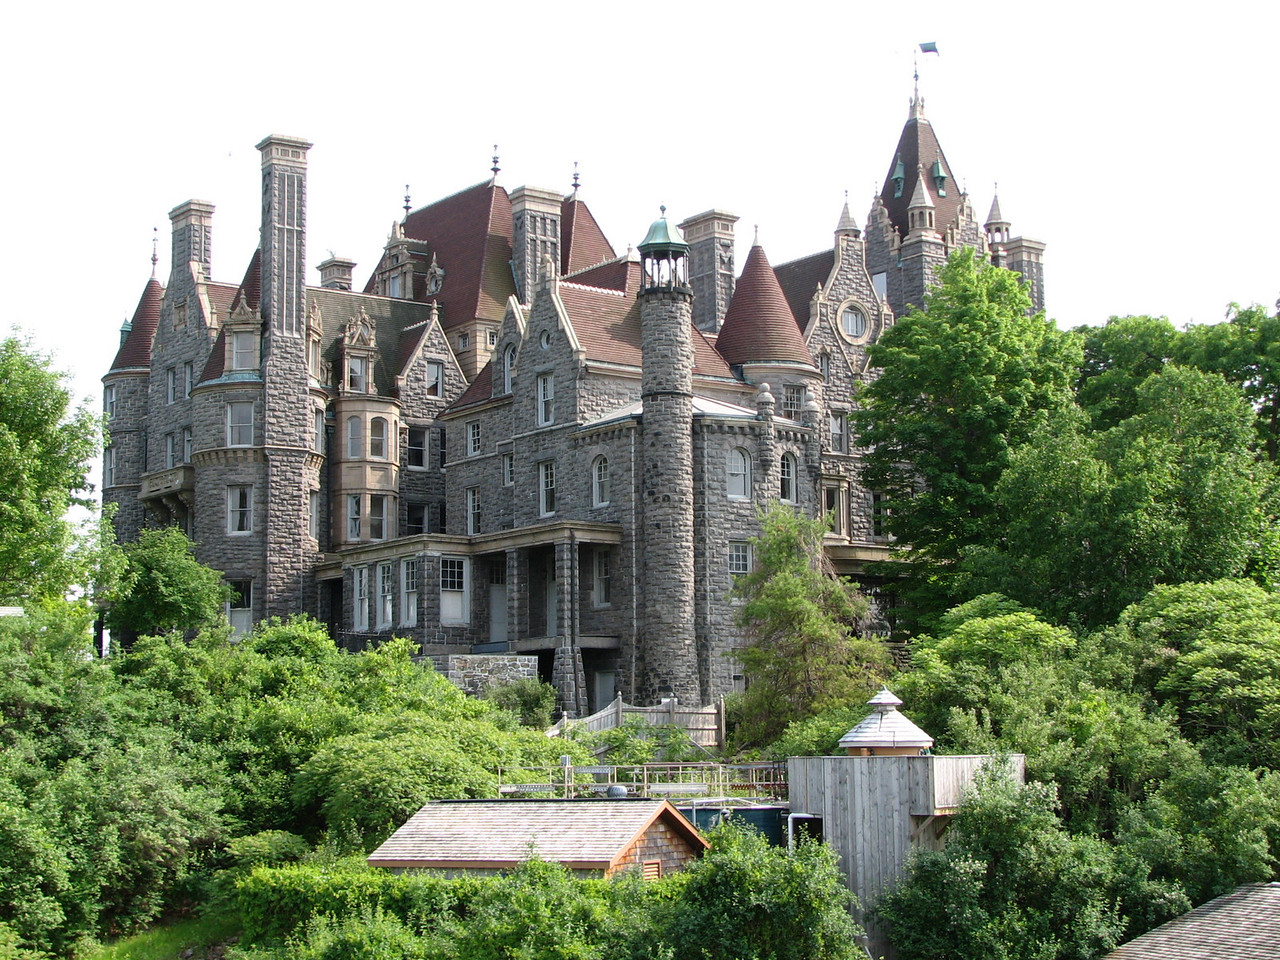 Boldt Castle, as seen on Thousand Islands cruise, is now restored and open for tours.